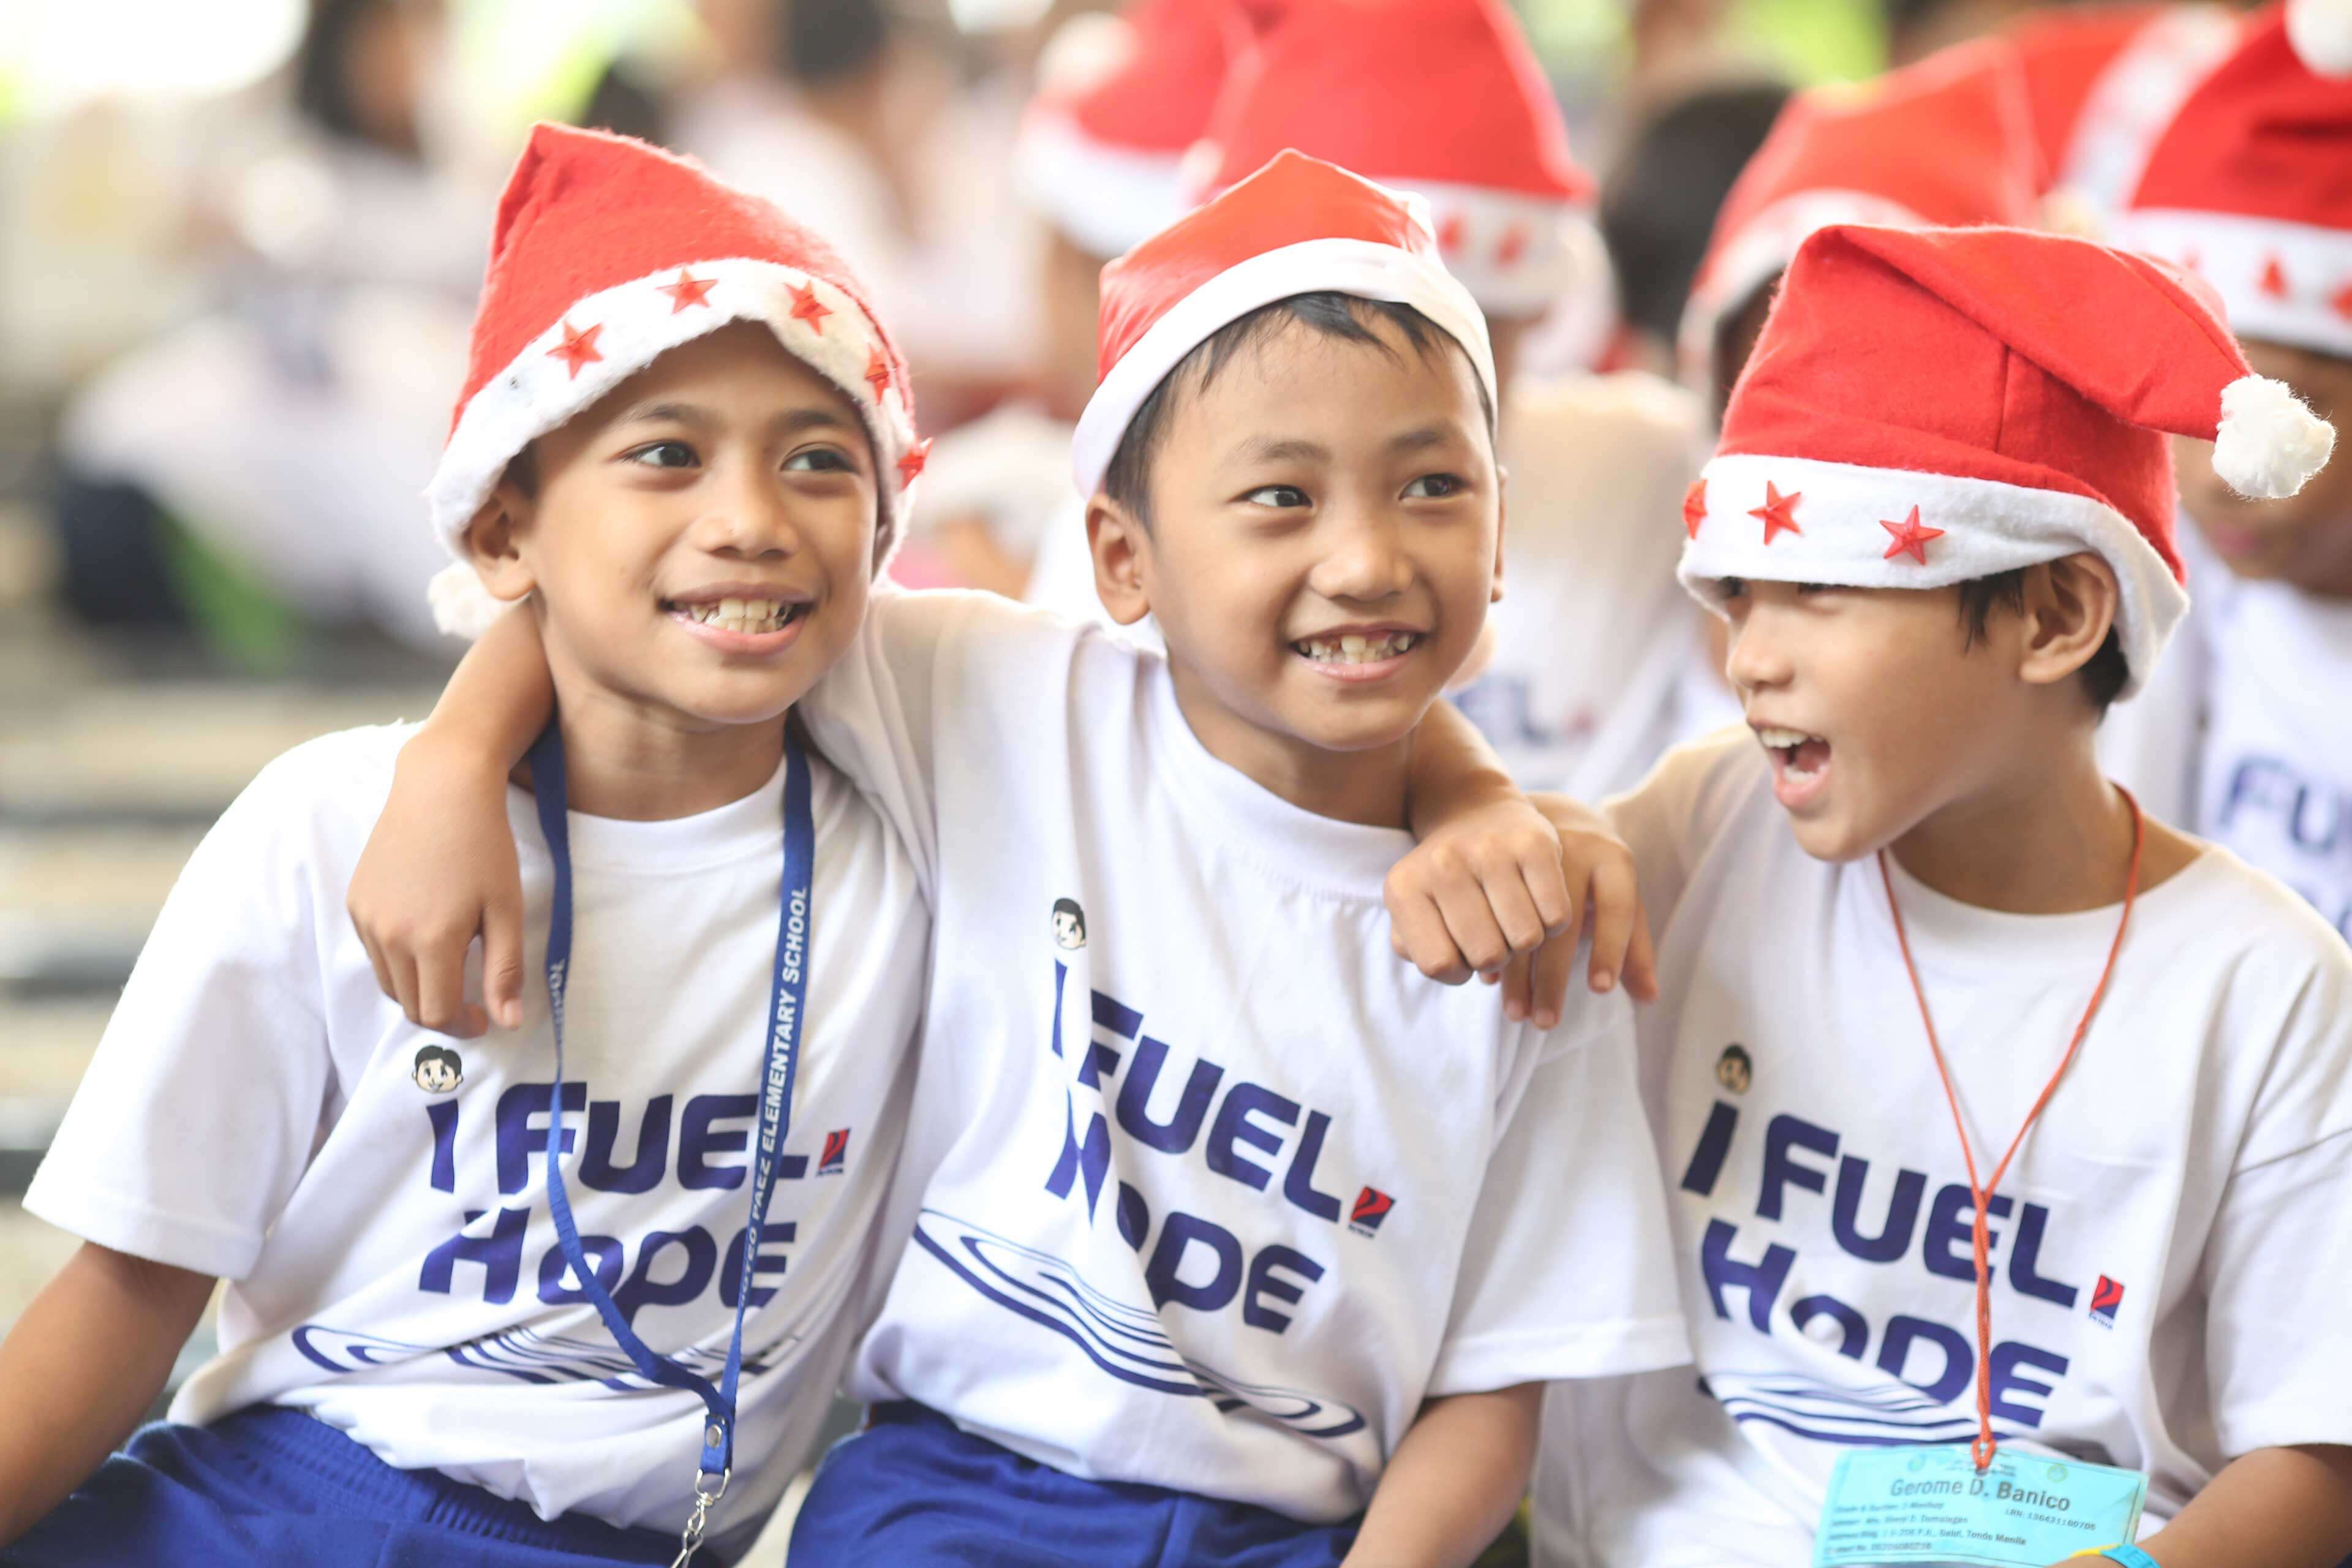 Petron brings holiday cheer to 3,000 scholars all over the country